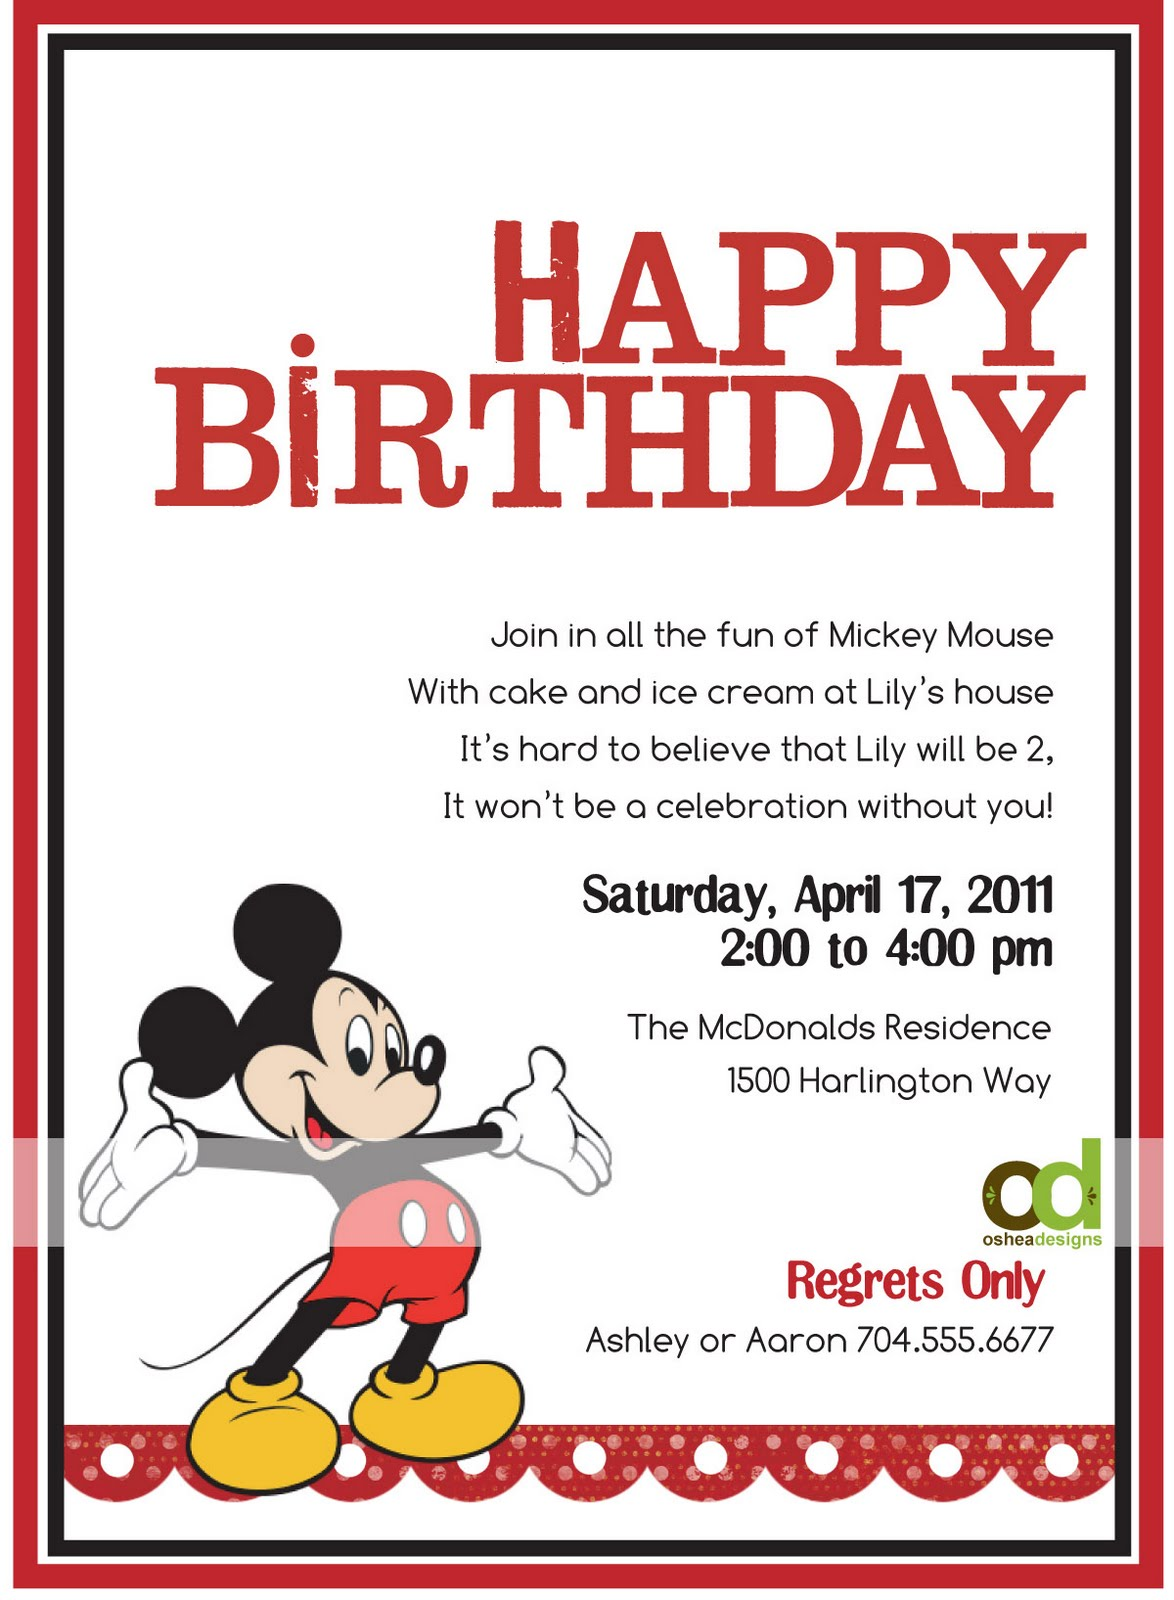 OSHEA DESIGNS - Customized Paper Goodies: Mickey Mouse Birthday ...